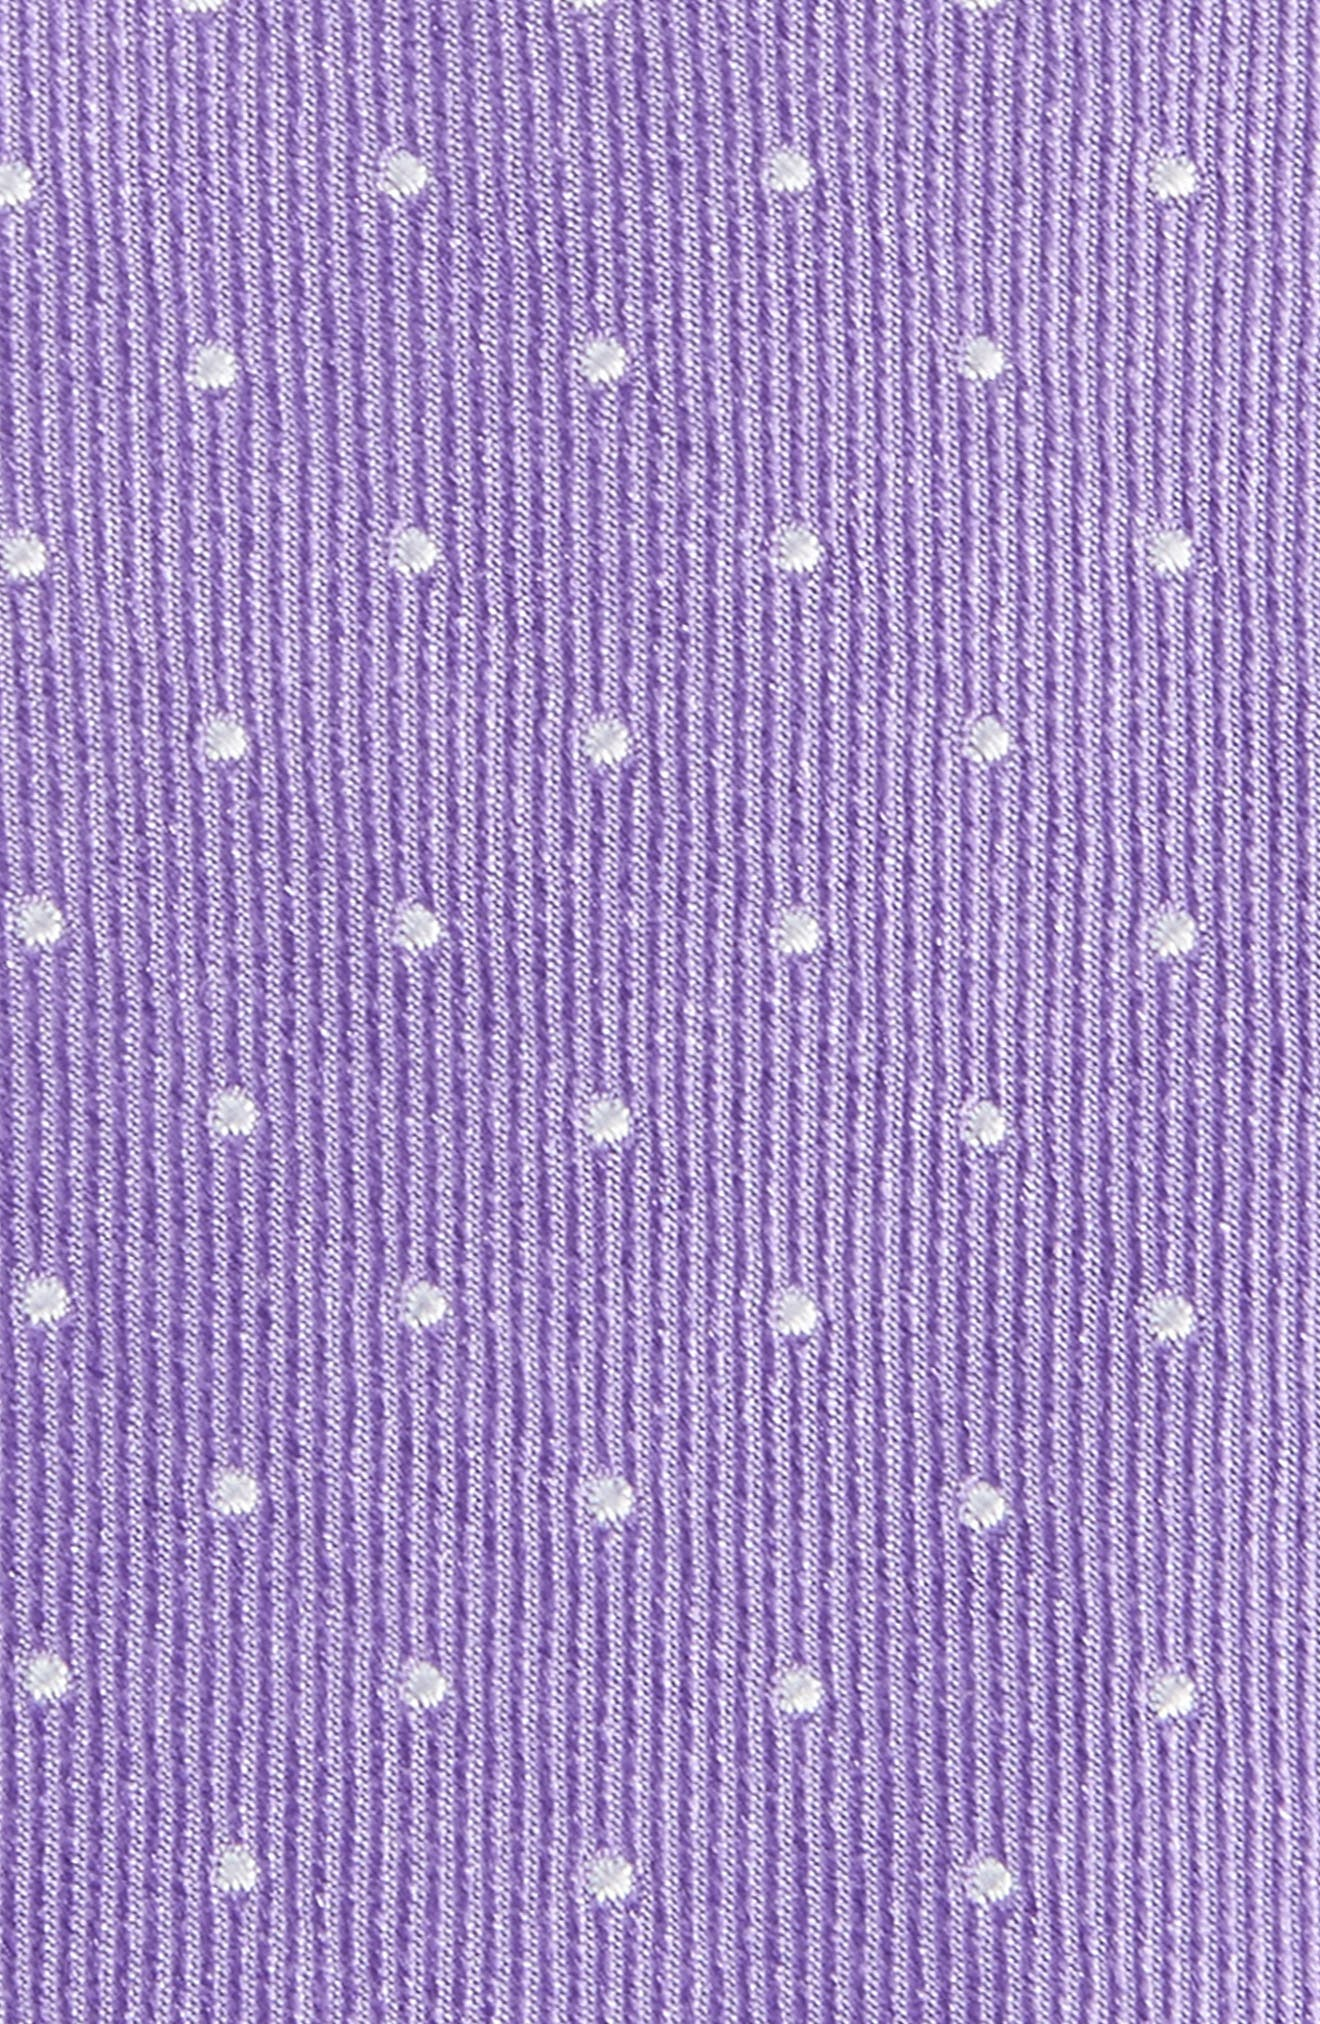 Hartwell Dot Silk Skinny Tie,                             Alternate thumbnail 2, color,                             Lilac